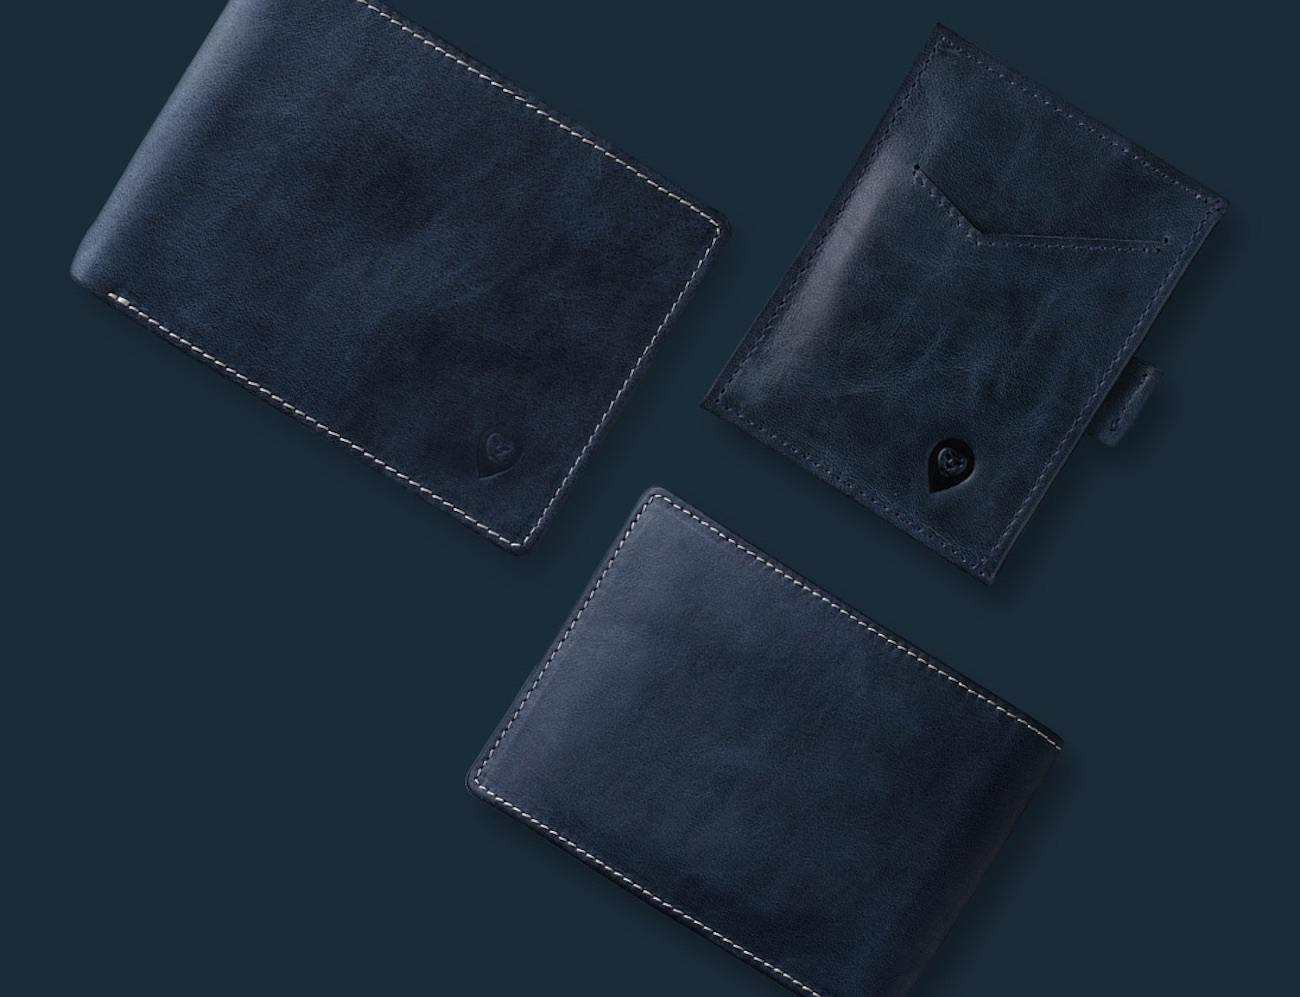 Wallor Smart RFID protected, GPS/BLTE wallet